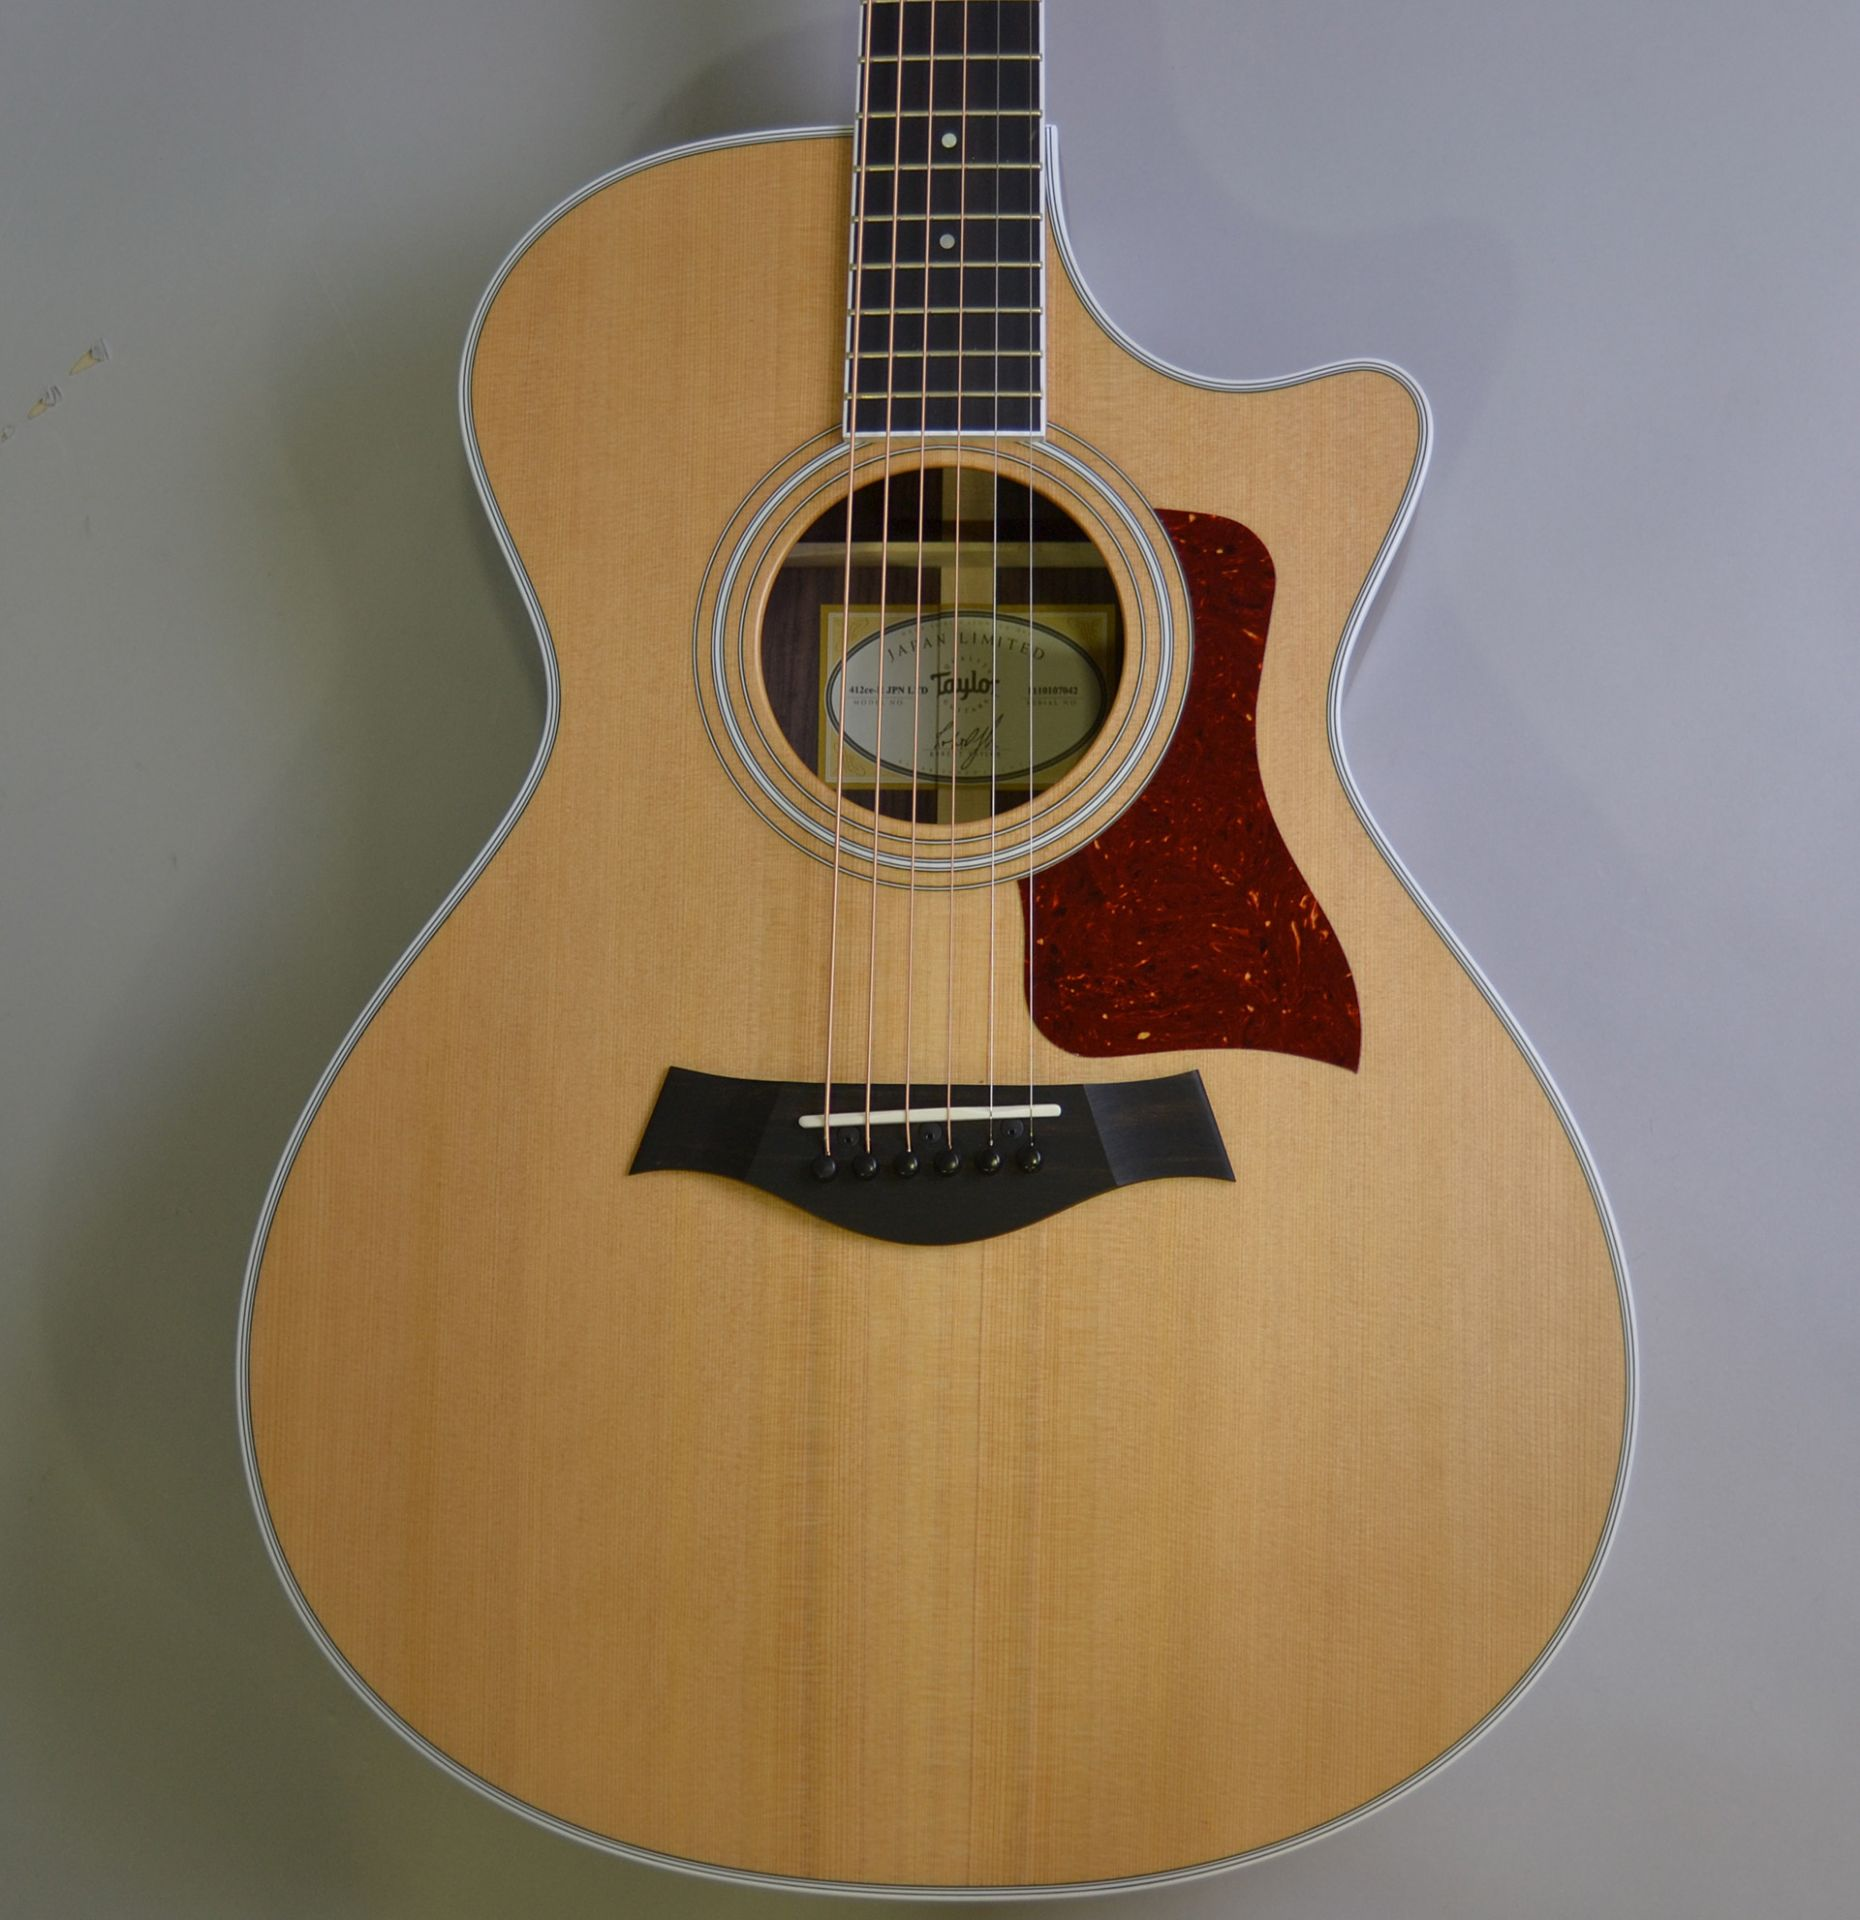 412ce Rosewood Japan Limited 2017のヘッド裏-アップ画像